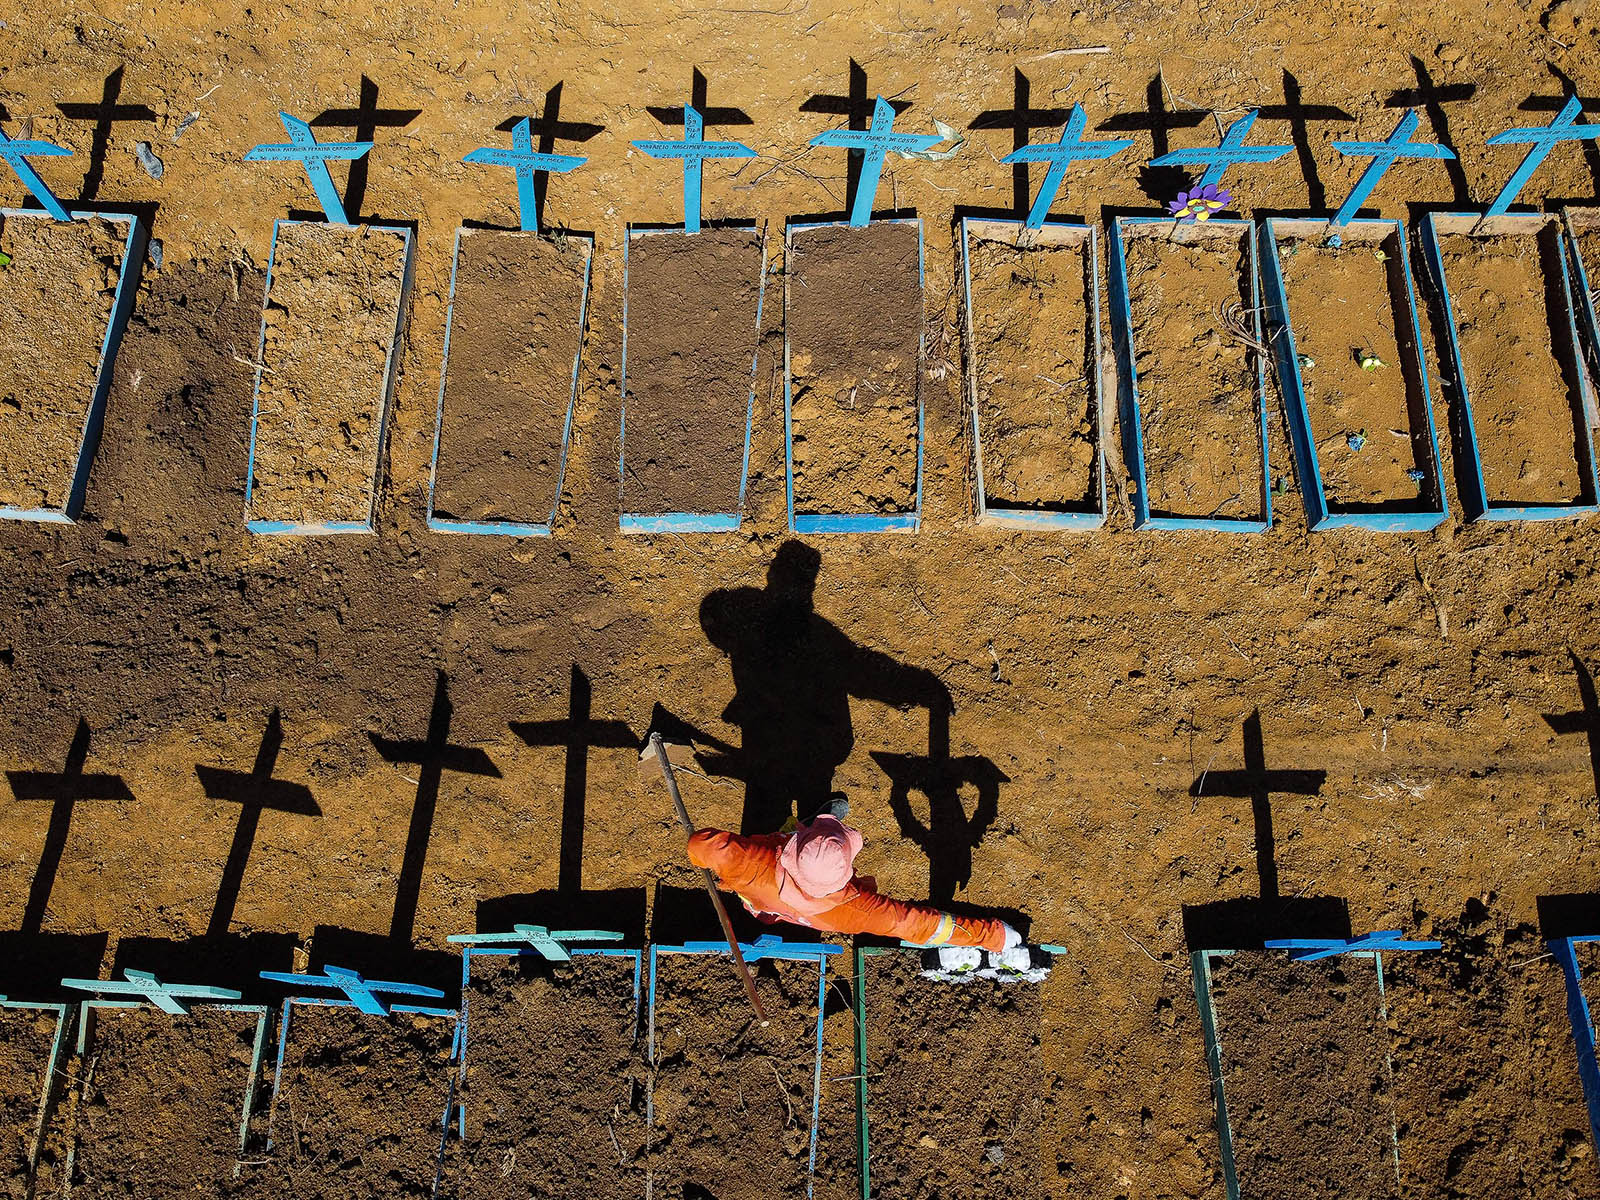 A gravedigger working at the Nossa Senhora Aparecida cemetery where Covid-19 victims are buried in Manaus, Brazil, on June 2.